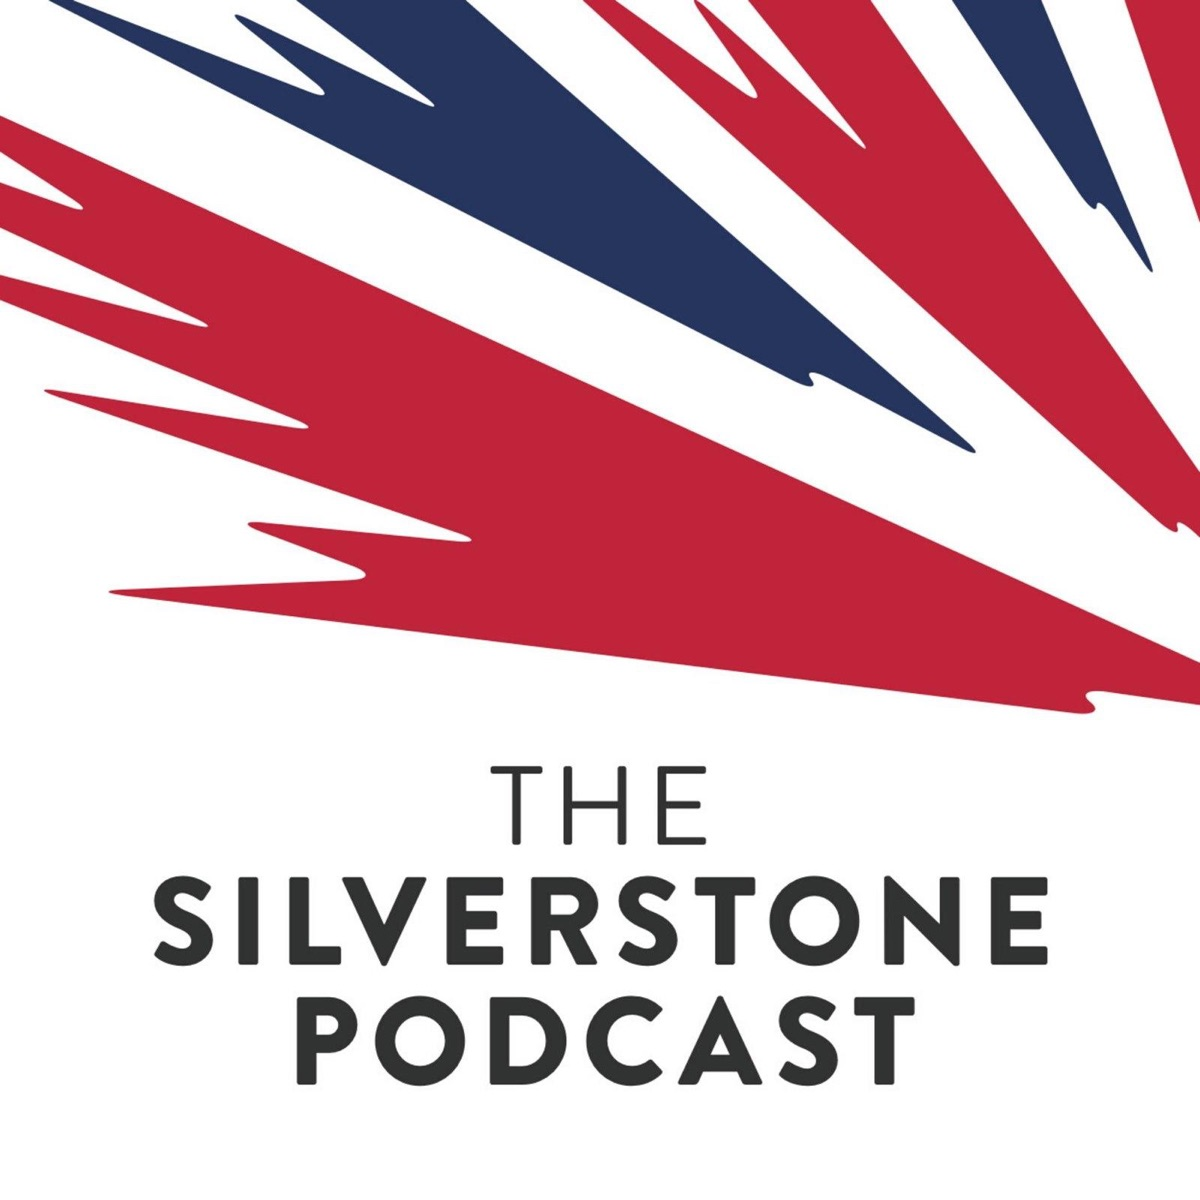 The Silverstone Podcast